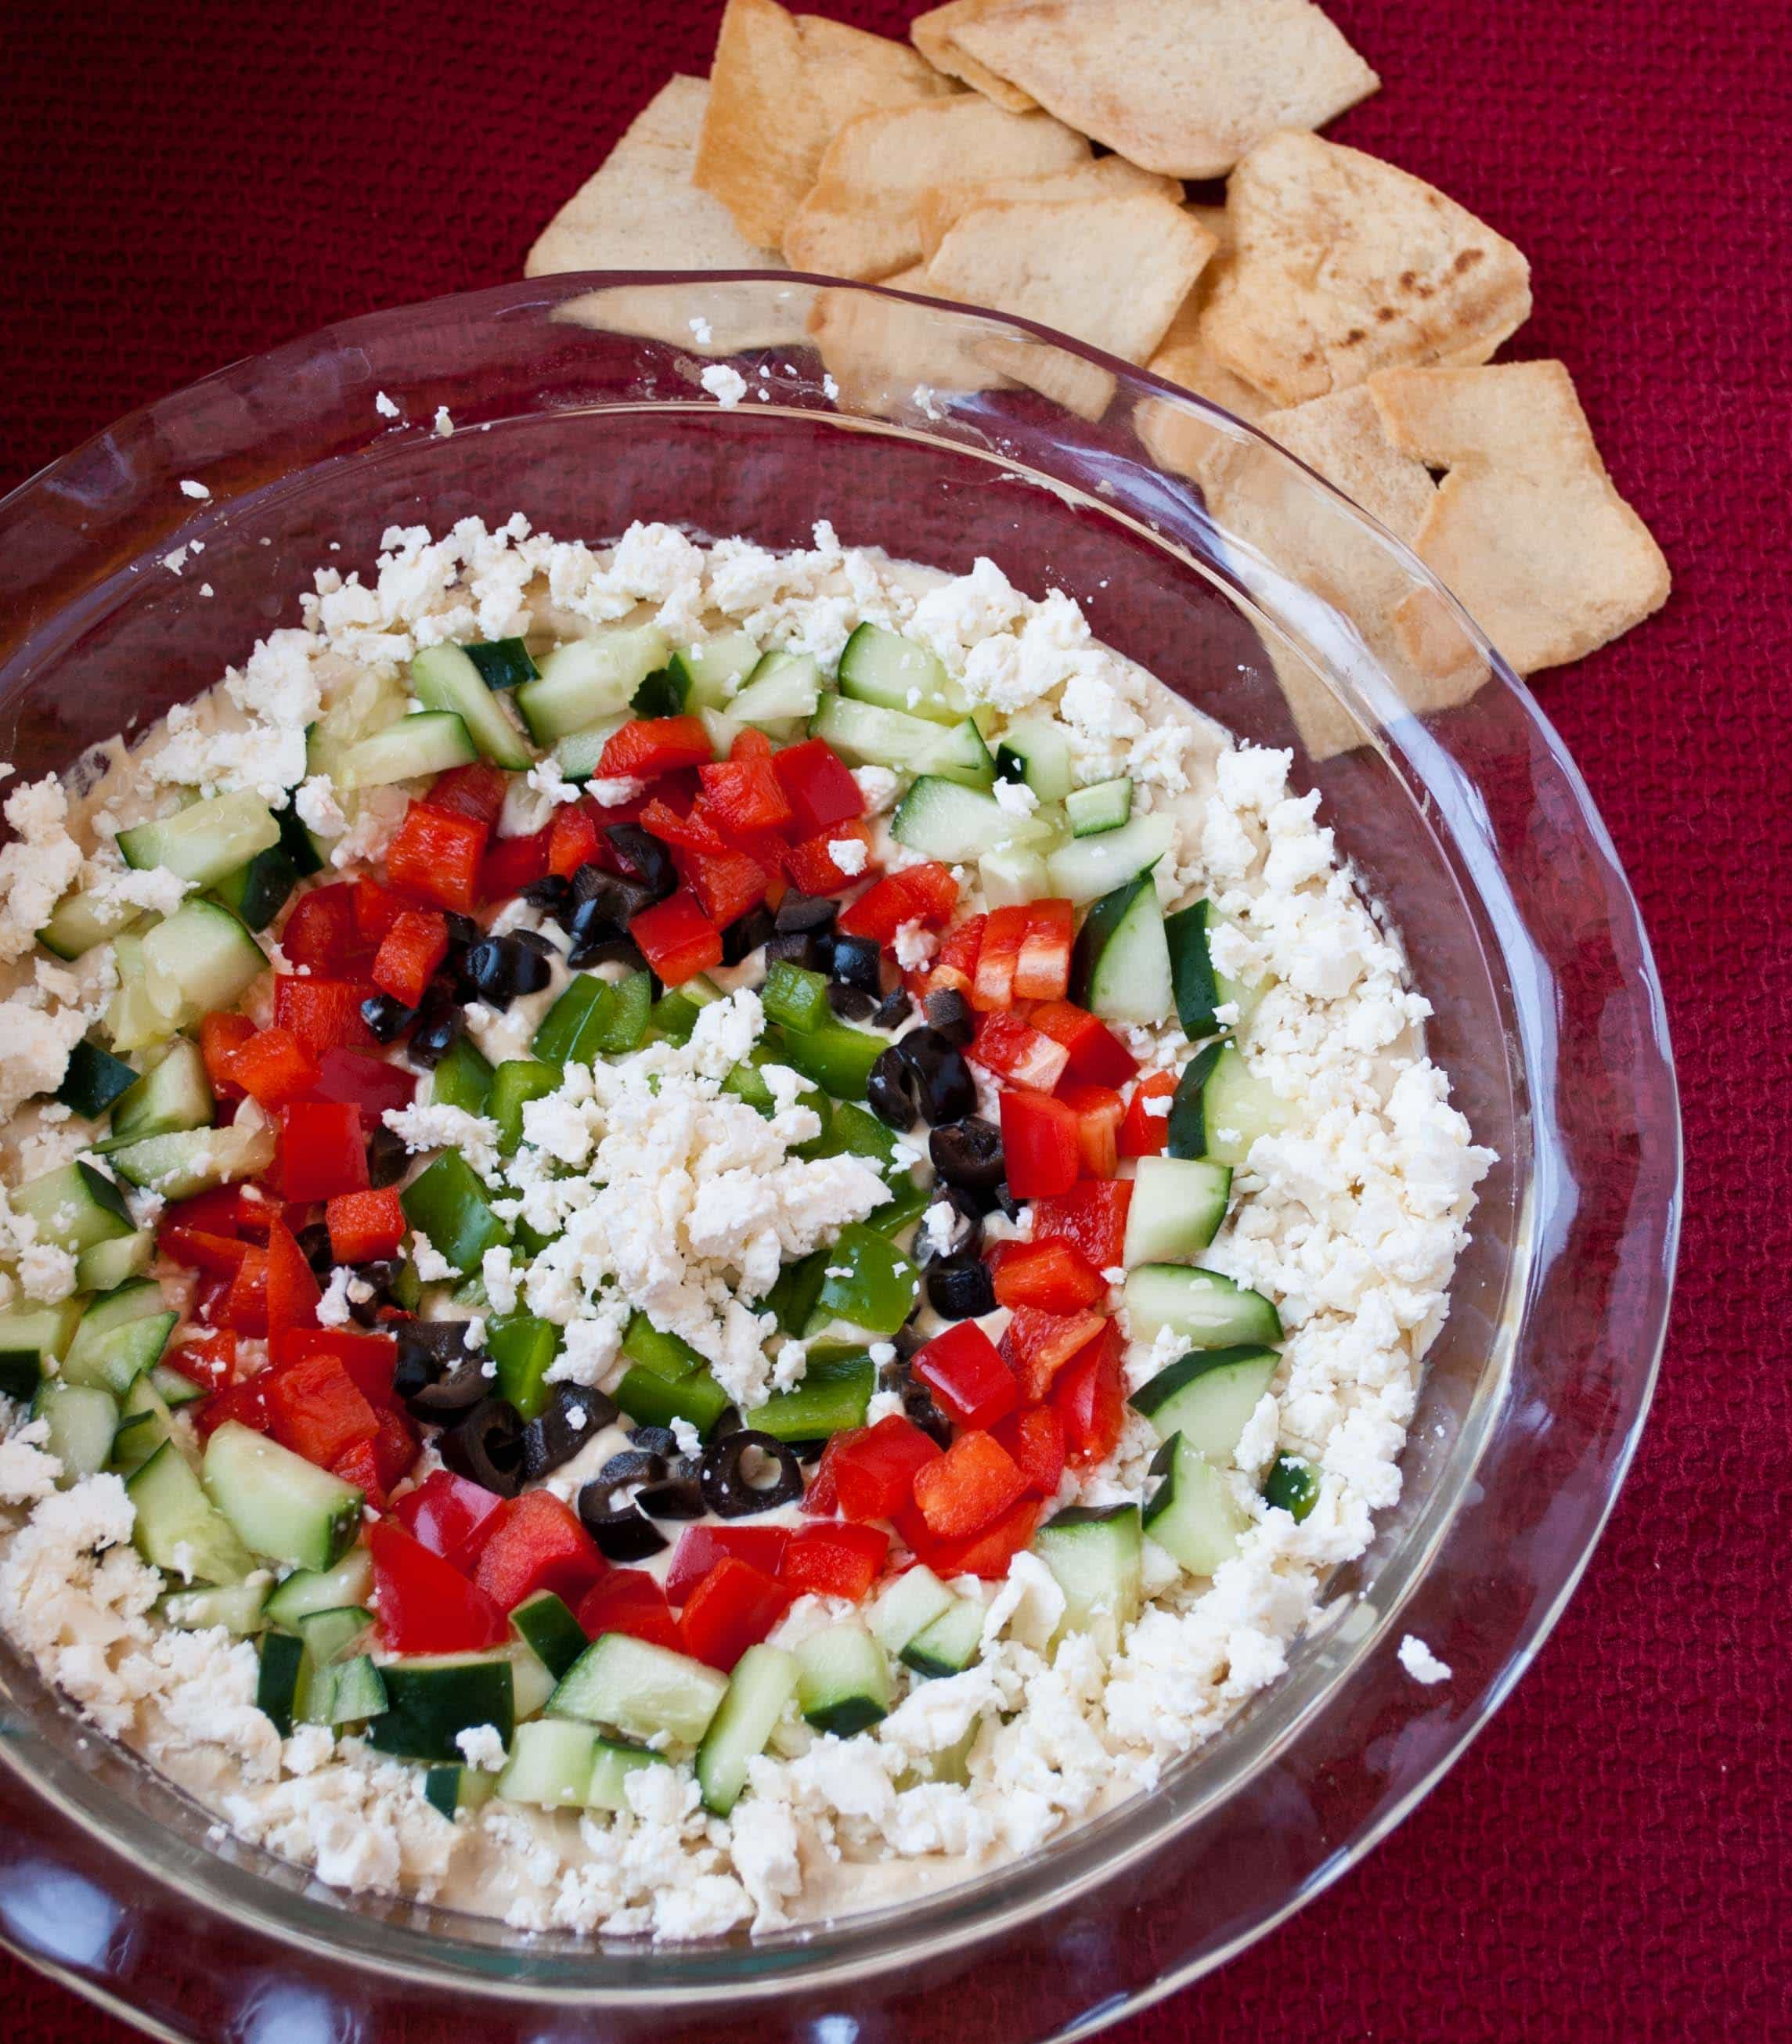 Greek Hummus Dip Recipe | Neighborfoodblog.com